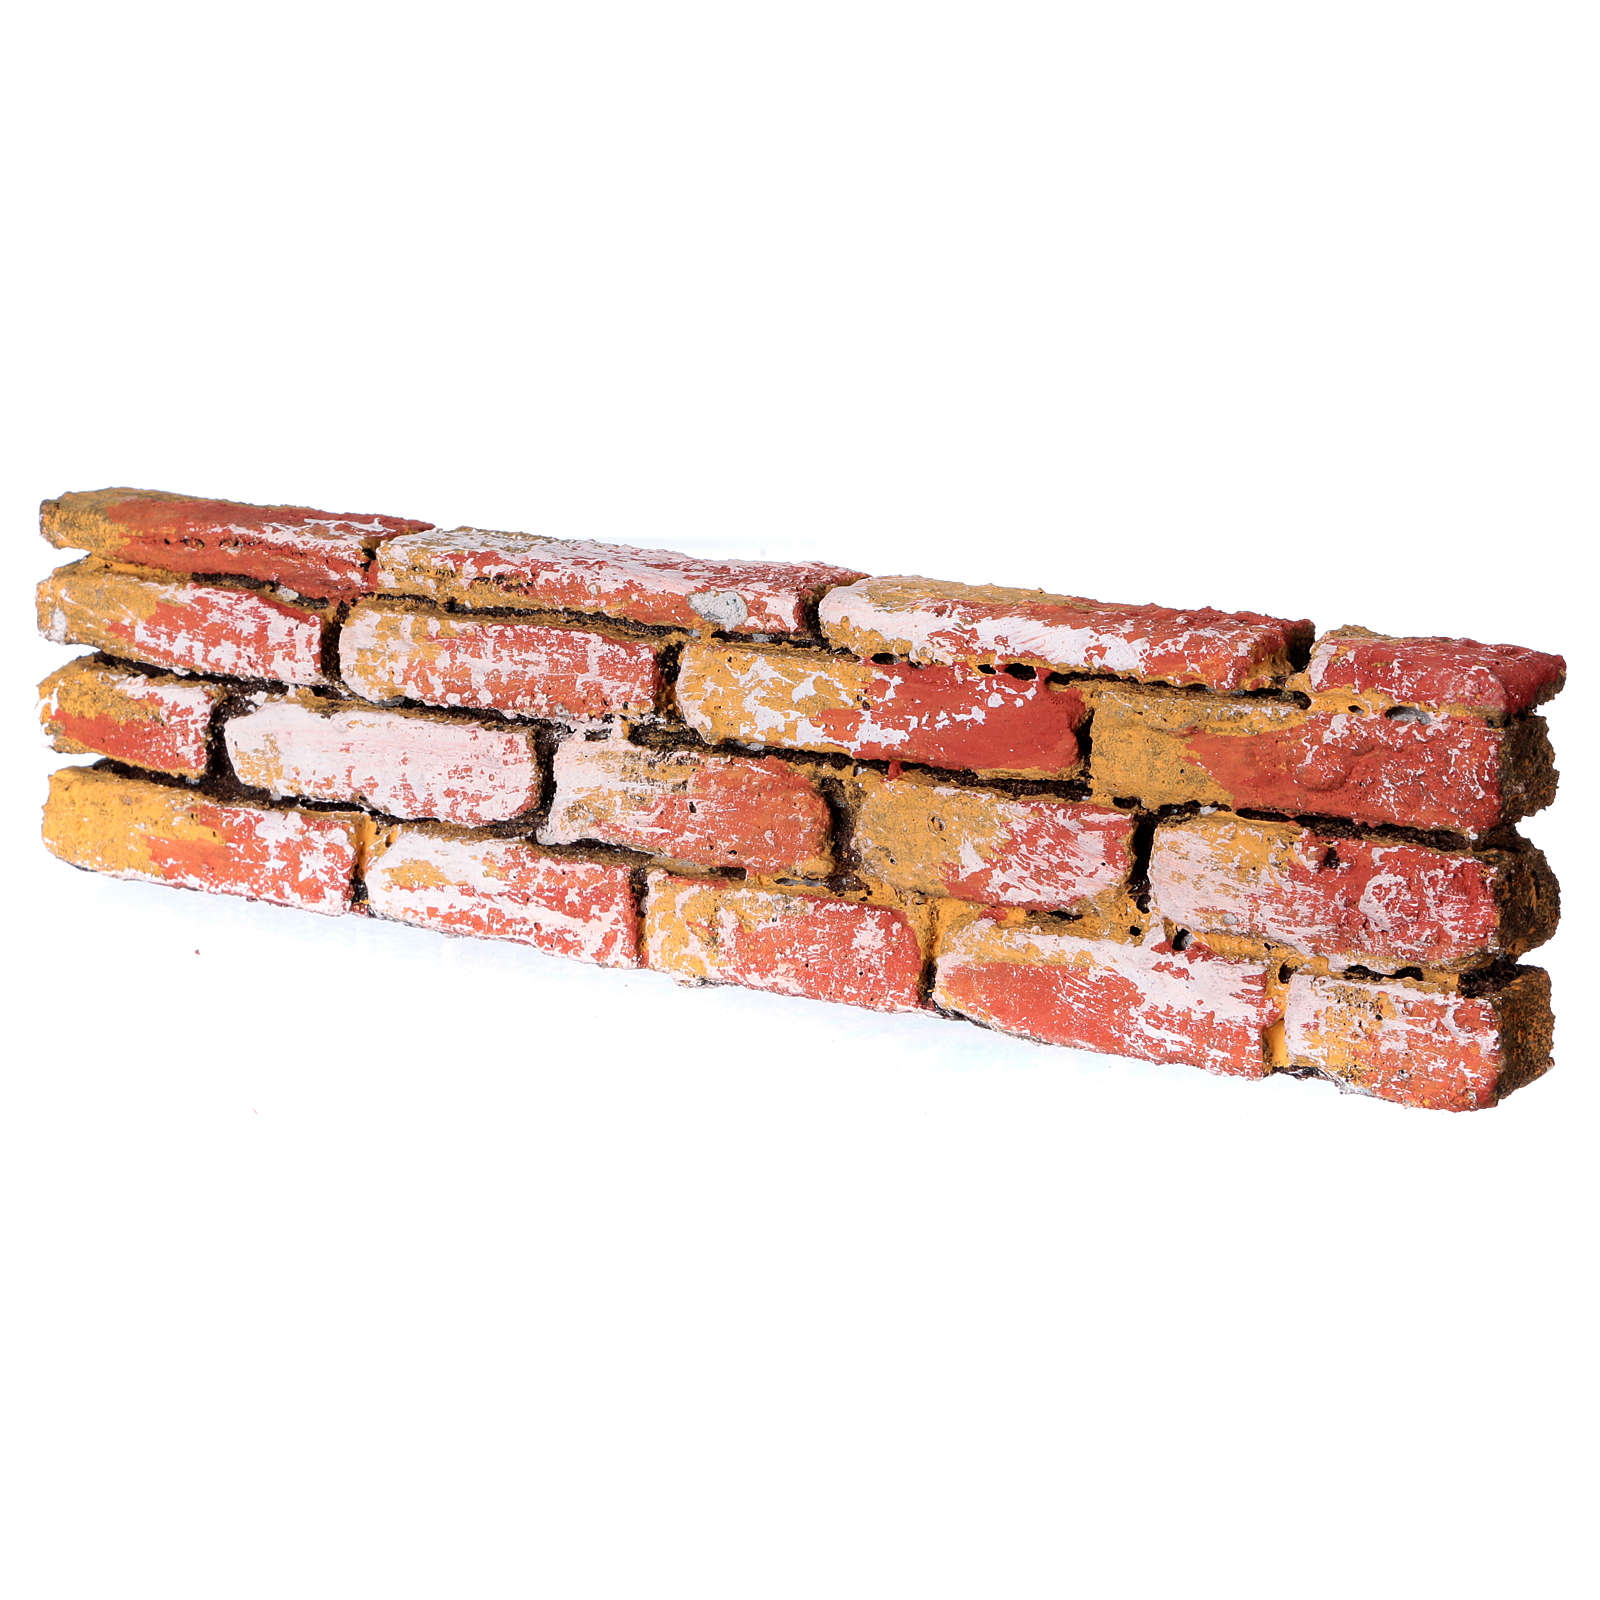 Painted Brick Wall in polystyrene 5x20x3 cm 4